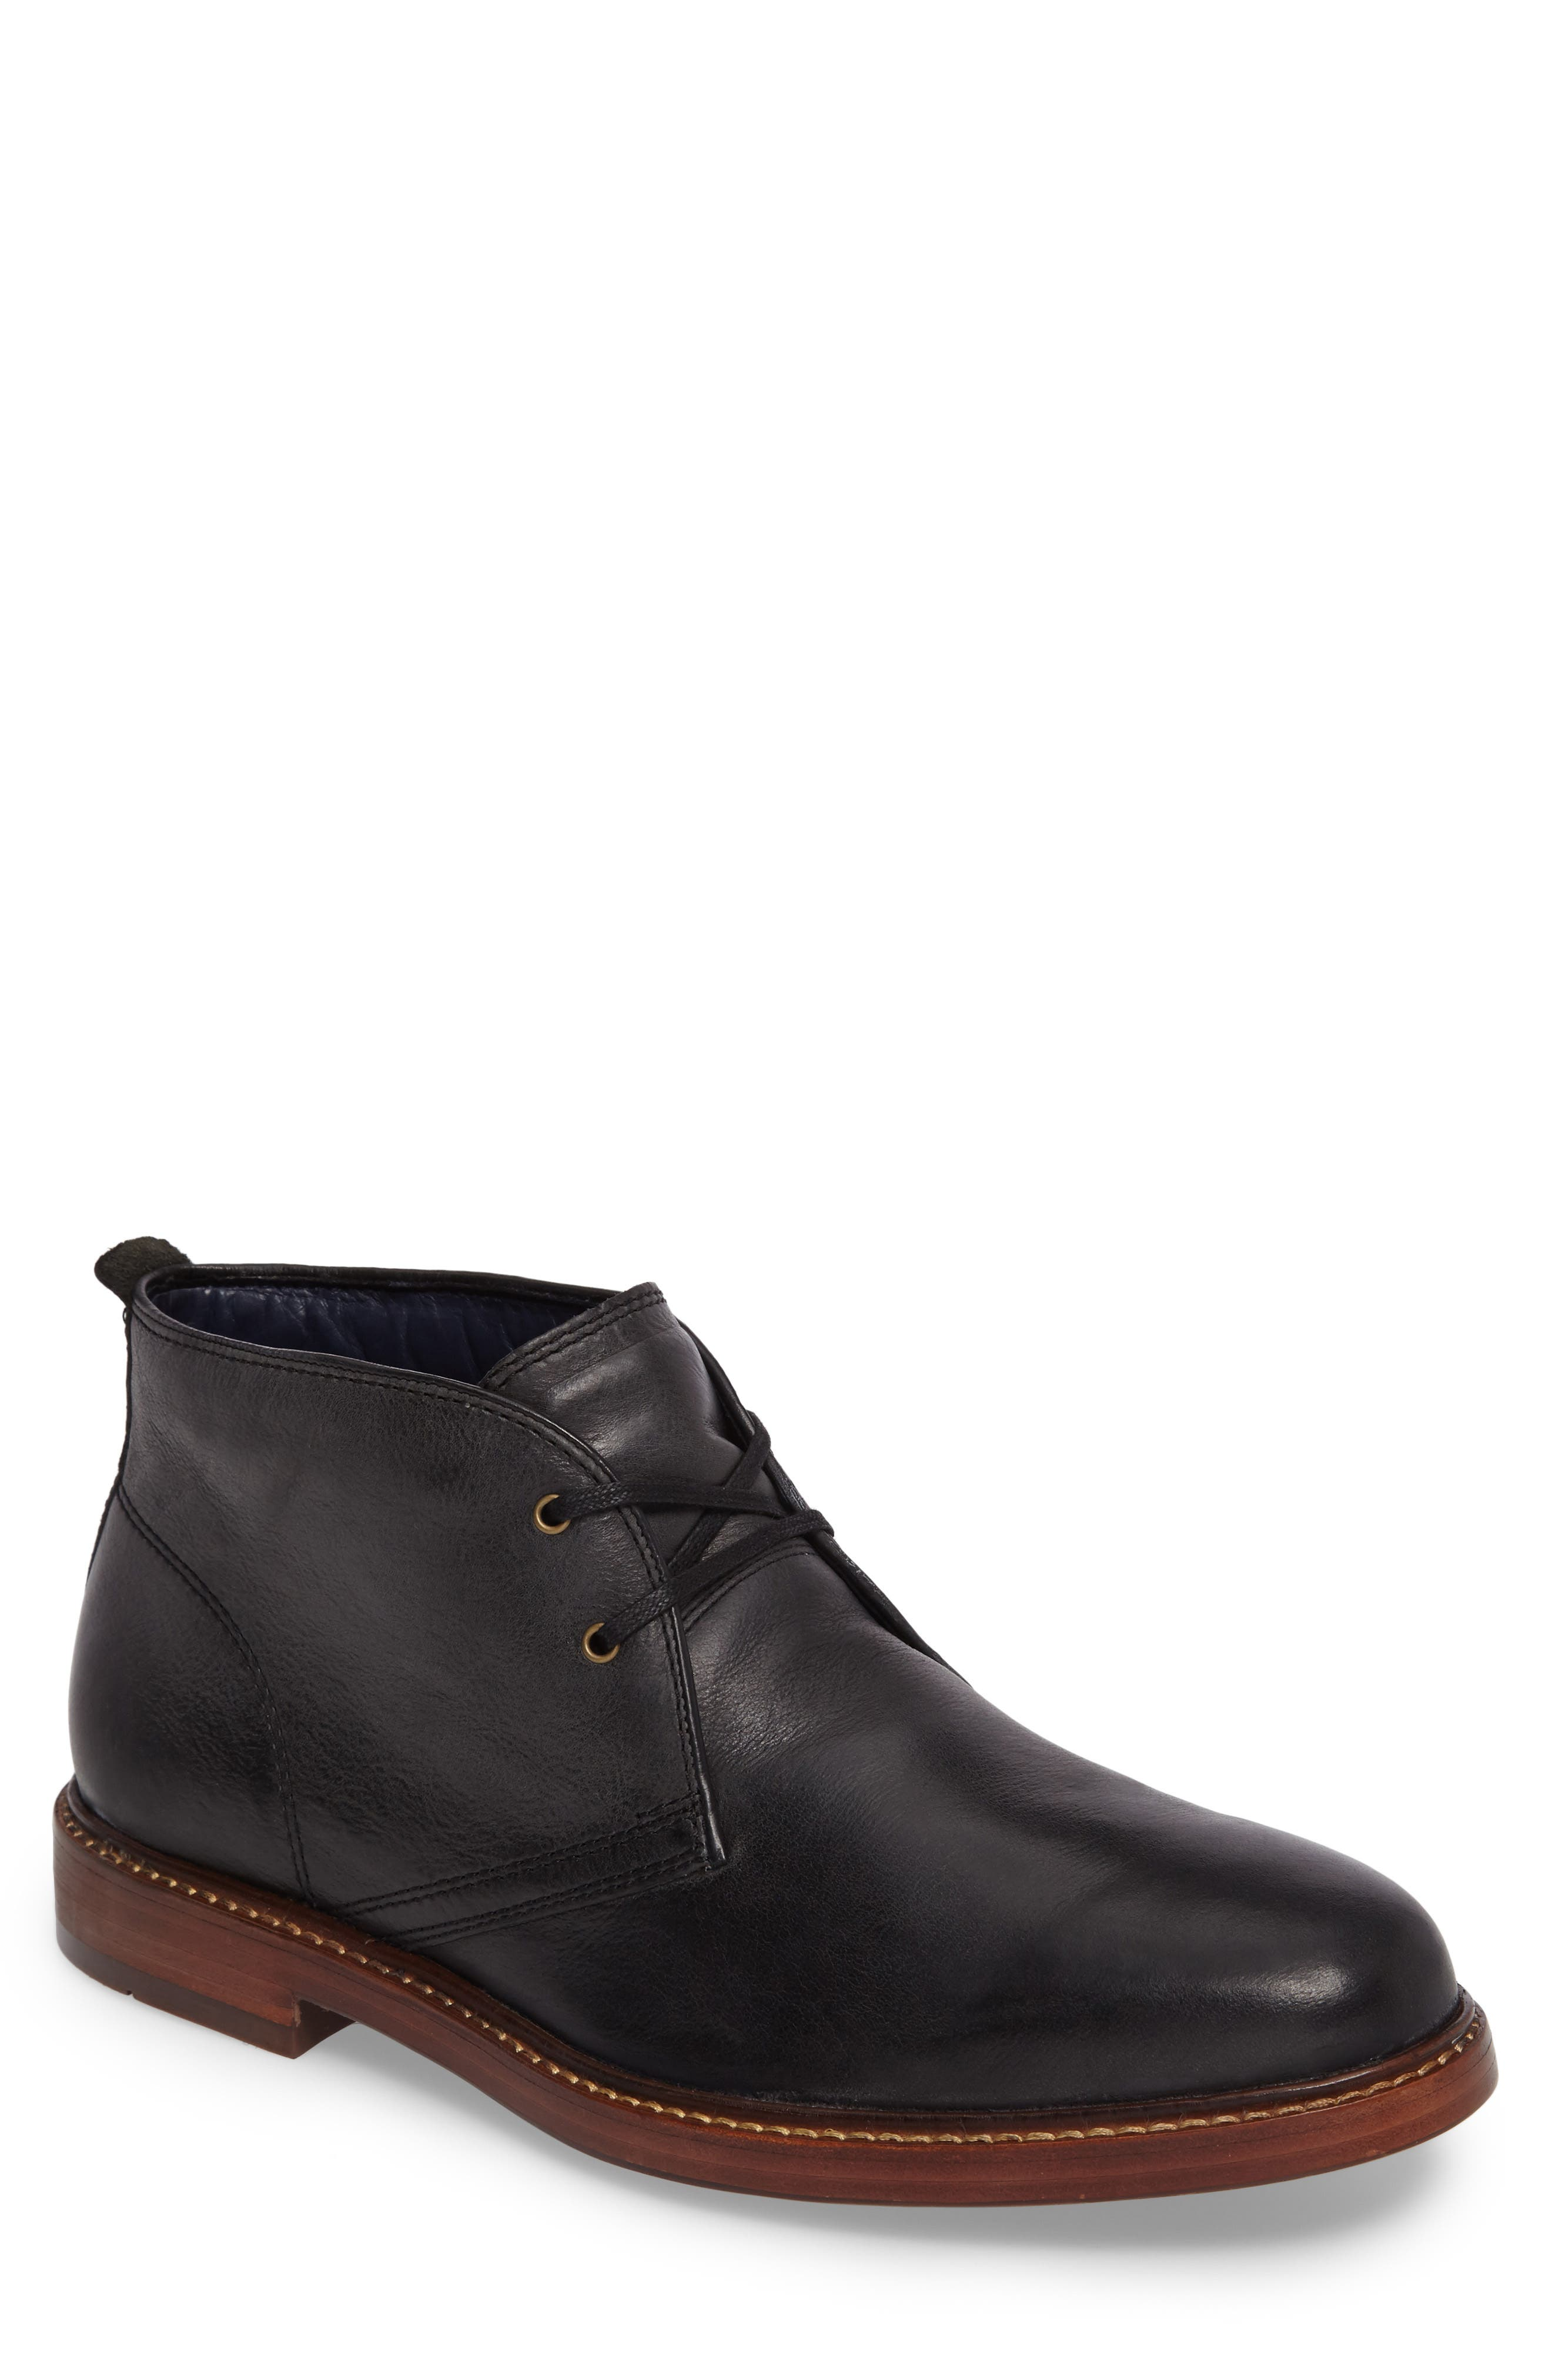 Cole Haan Tyler Chukka Boot, Black